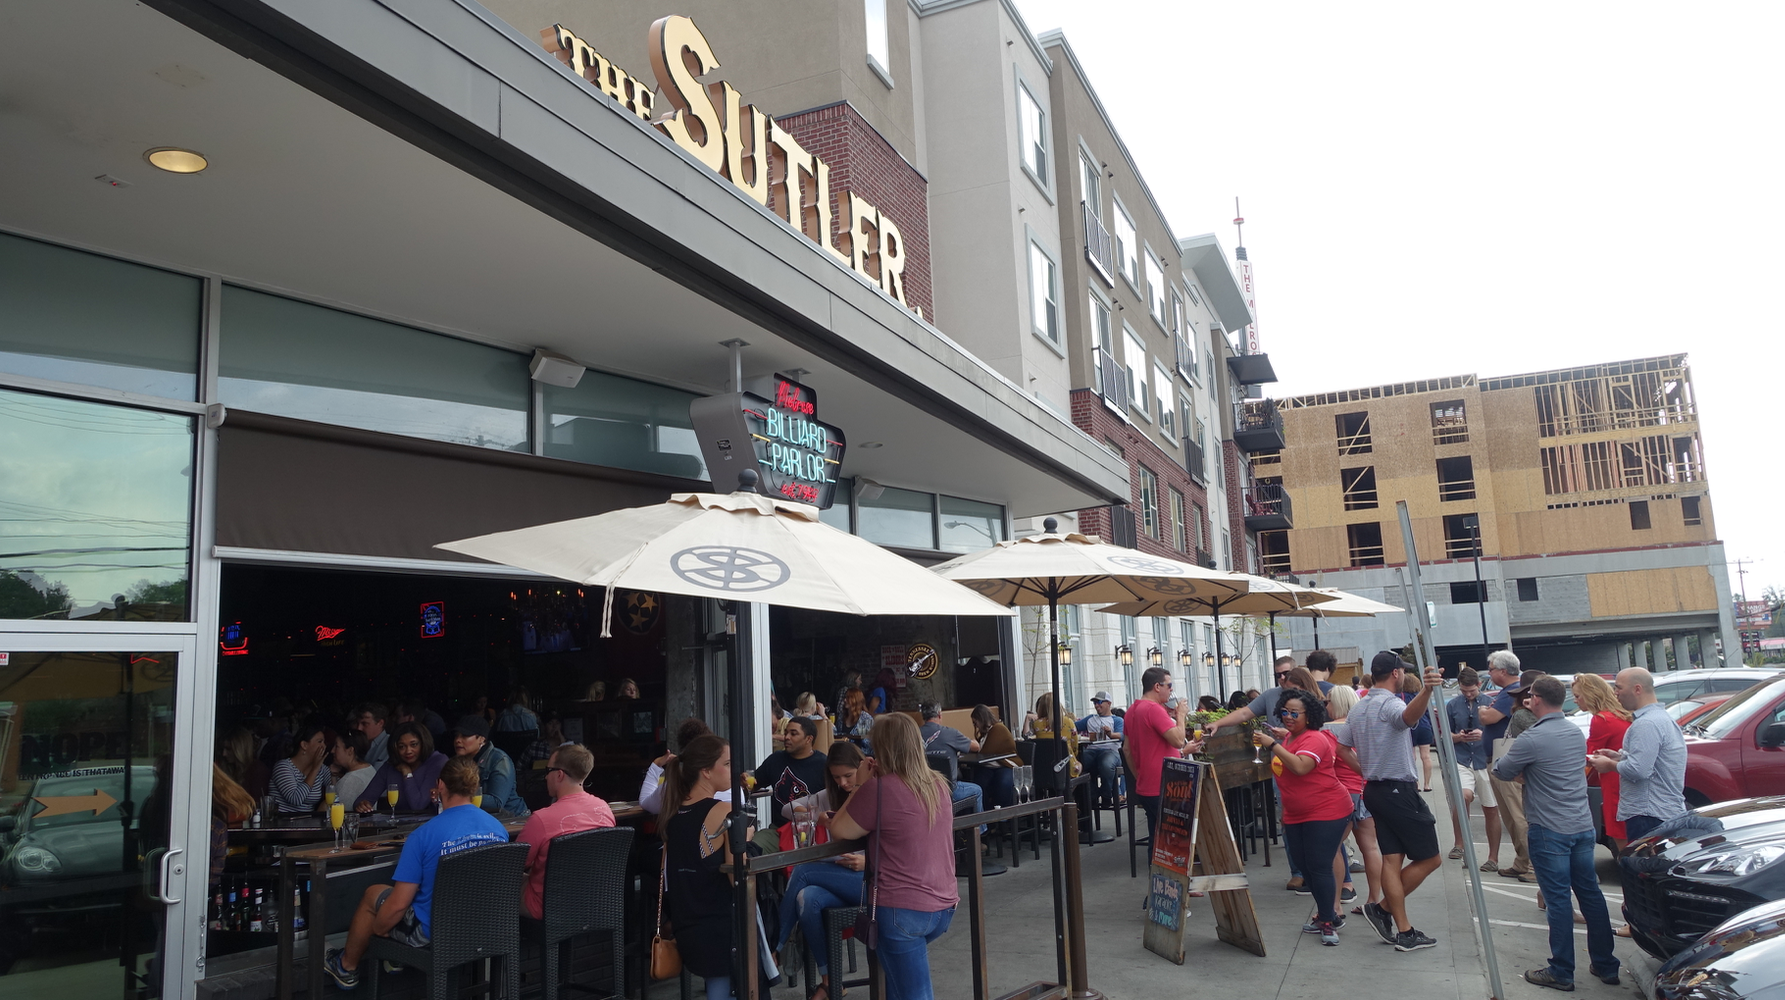 The Sutler is just one of many popular weekend brunch spots in Nashville along emerging 8th Ave South district.